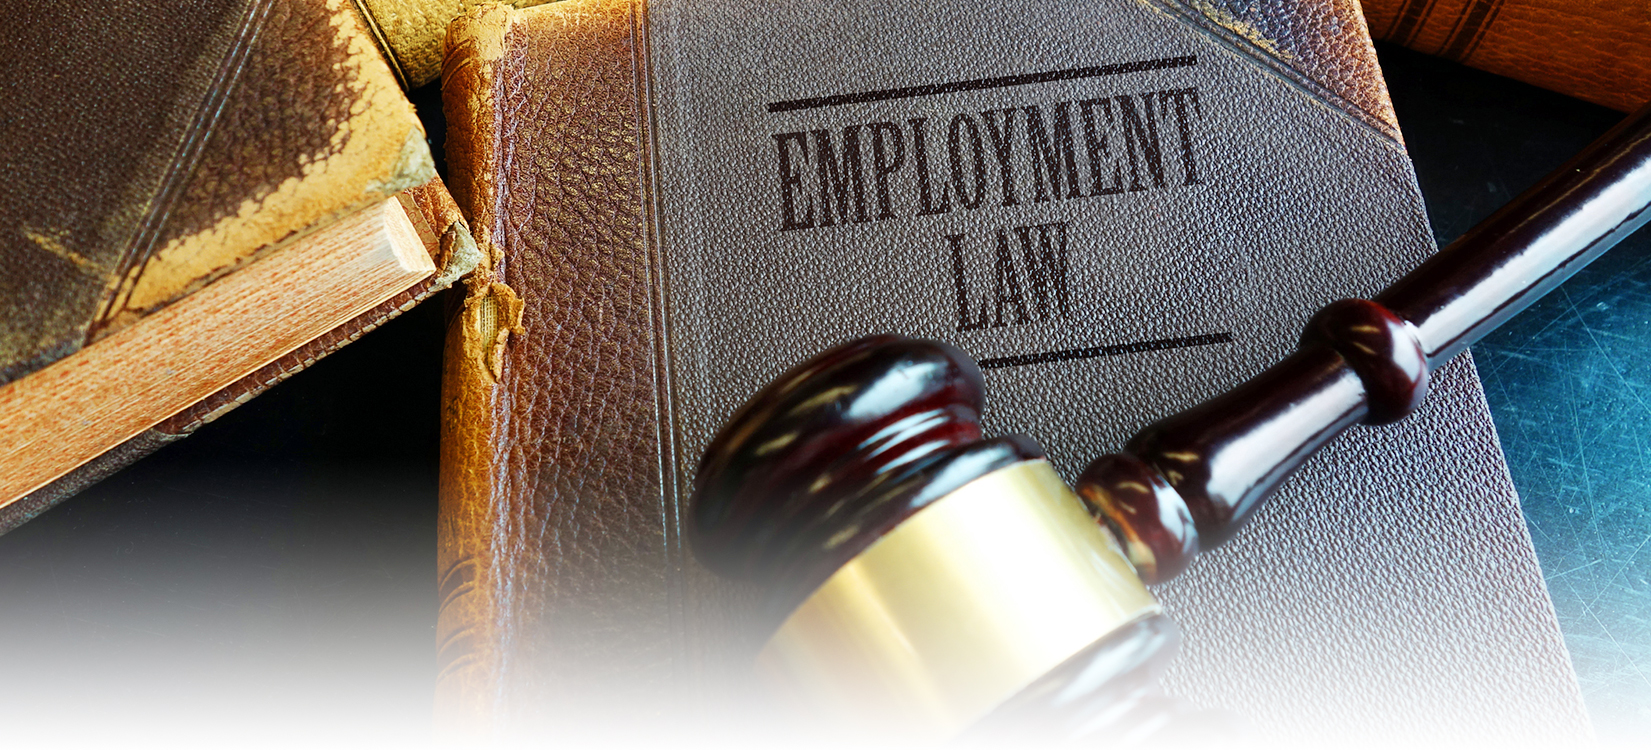 south jersey labor & employment law